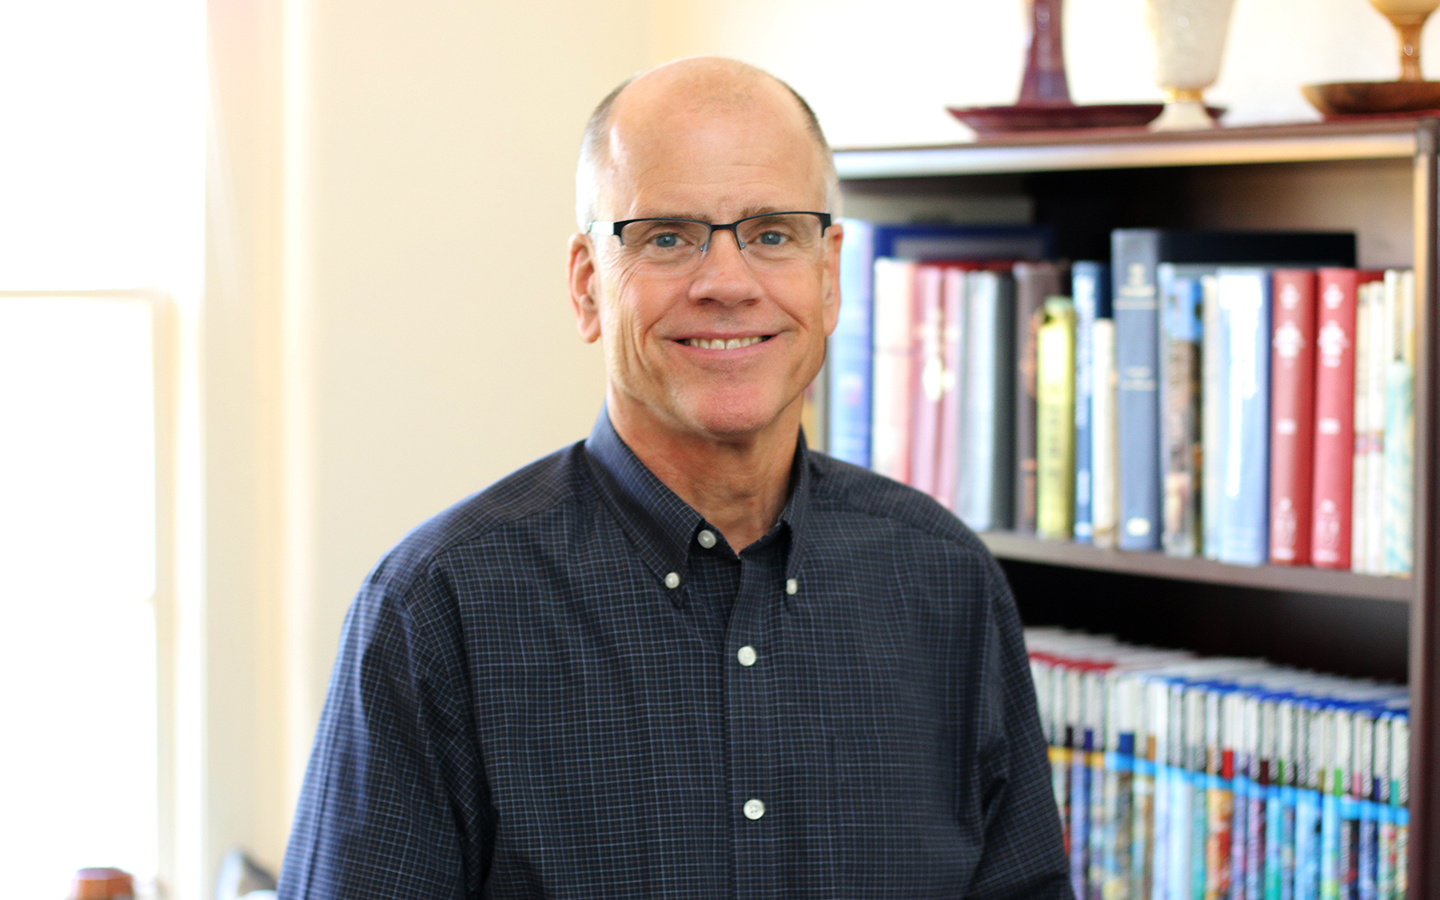 Bridgewater College Chaplain Honored By Shenandoah District Pastors for Peace